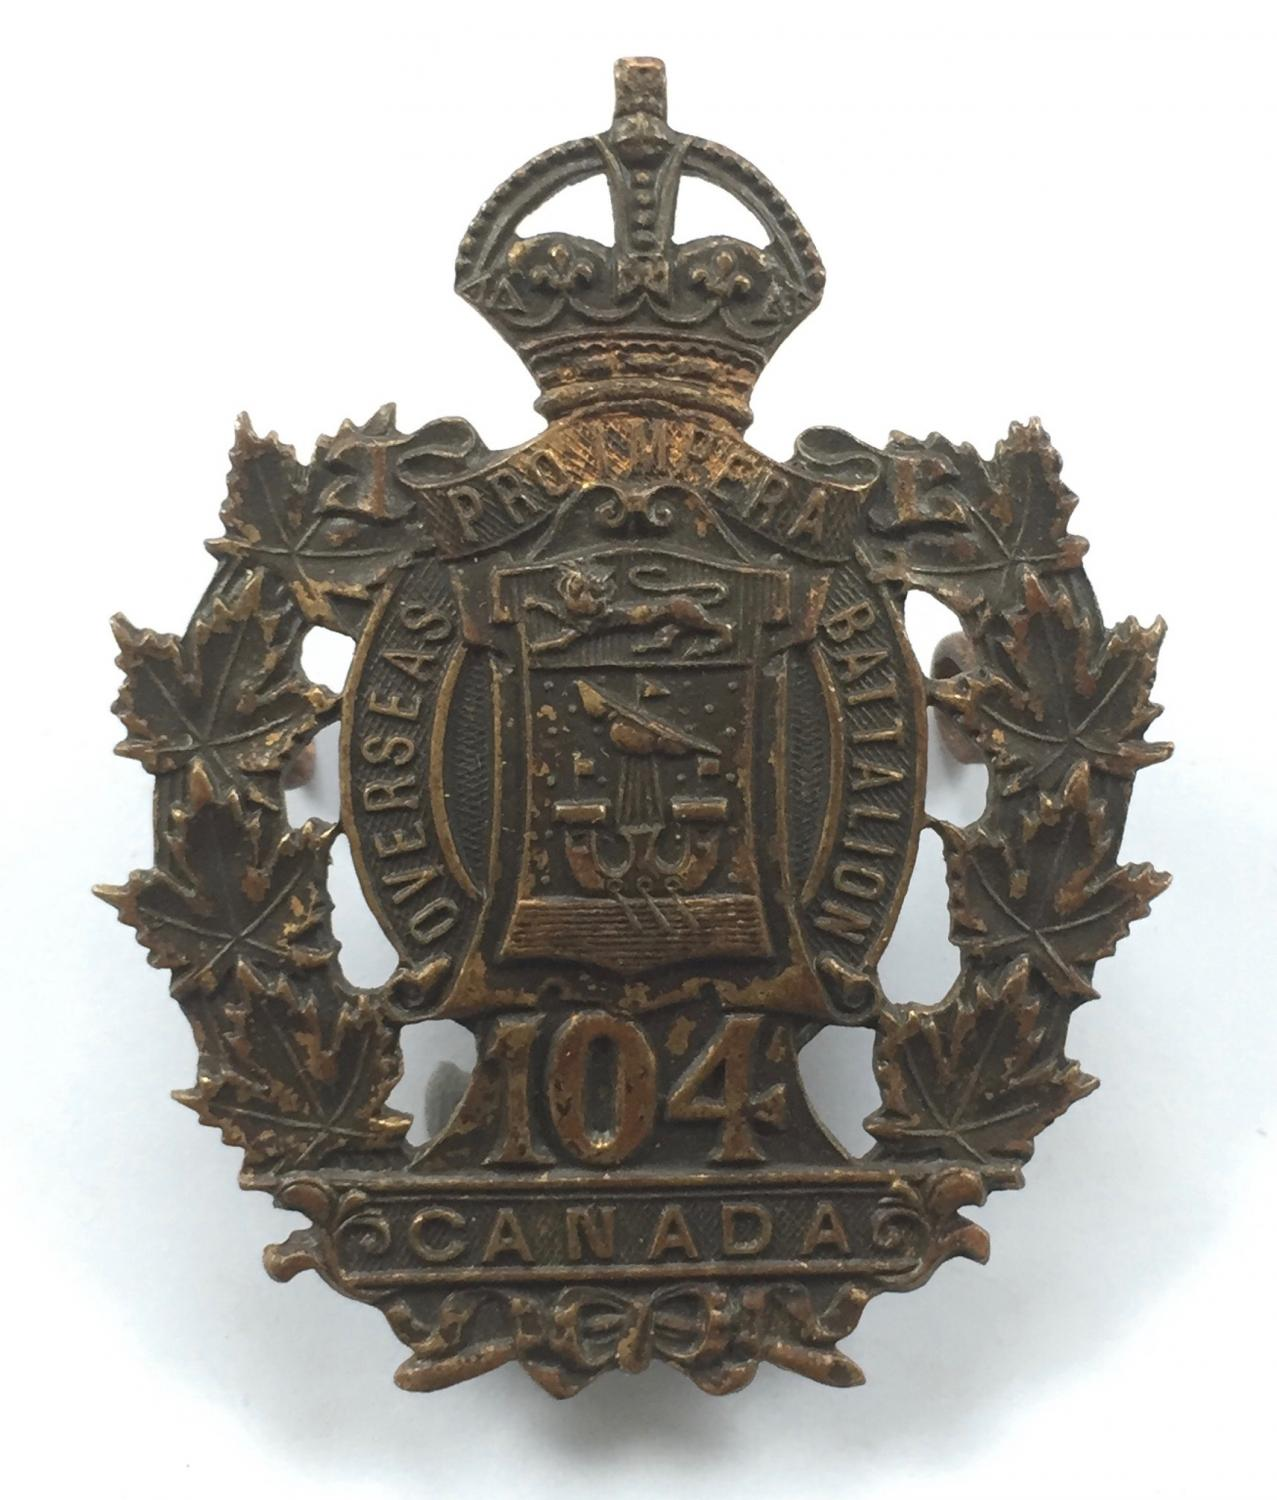 Canadian. 104th (Sussex, New Brunsick) Bn WW1 CEF badge